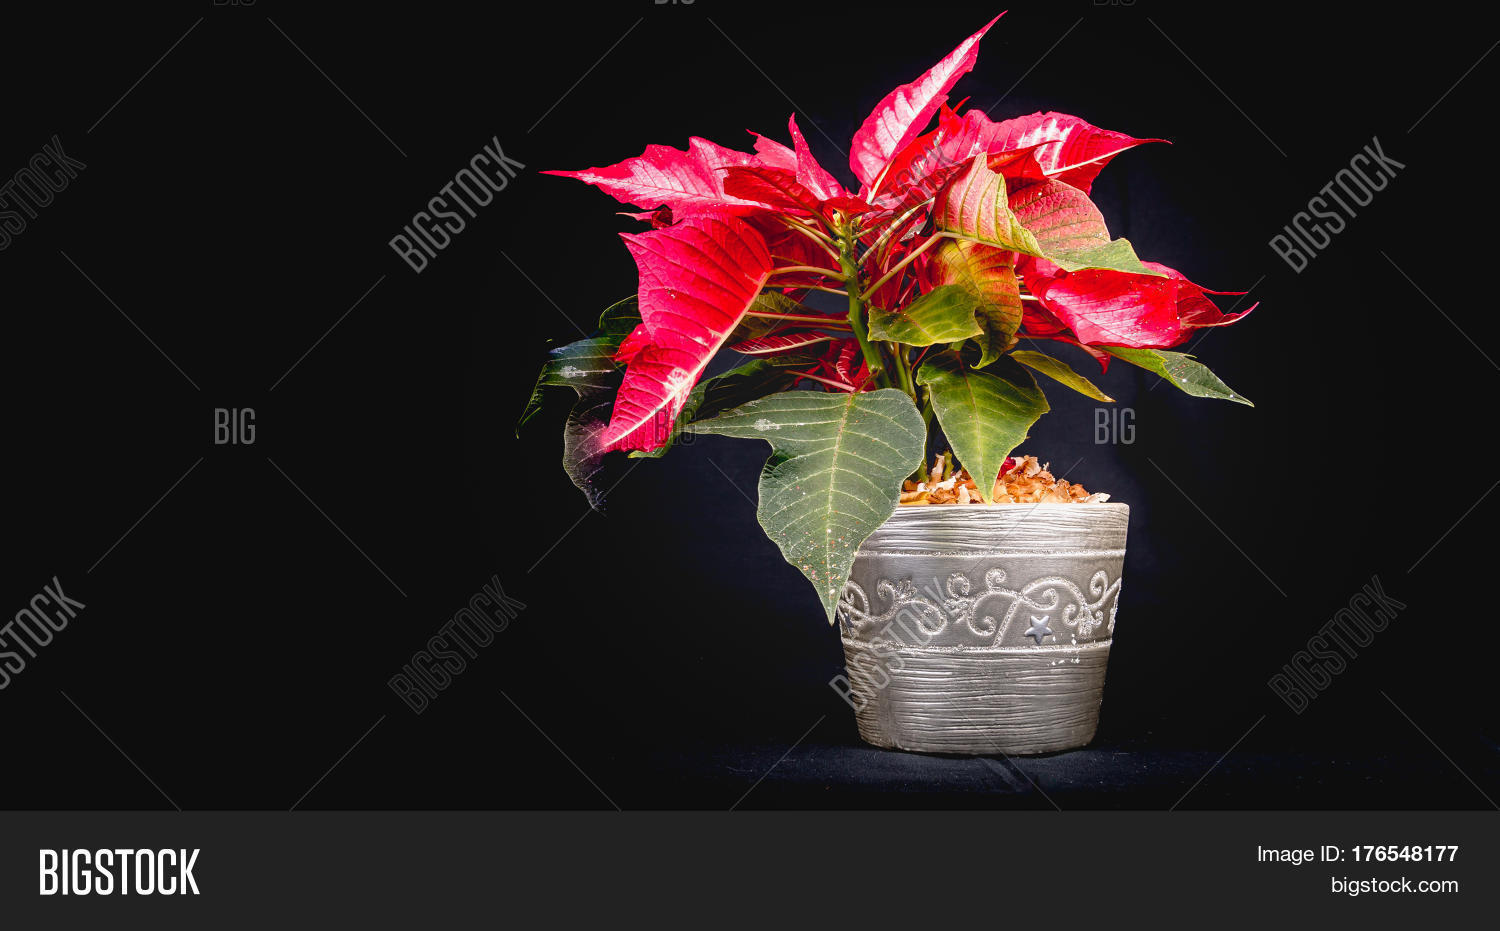 Euphorbia,Eve,background,bethlehem,black,bloom,bright,card,celebration,christmas,closeup,colorful,december,decoration,festive,flora,floral,flower,foliage,garden,gift,green,grey,holiday,leaves,merry,metal,metalic,nature,petals,plant,poinsettia,postcard,pot,pulcherrima,red,religious,season,seasonal,star,symbol,toxicity,tradition,traditional,tree,vintage,white,winter,xmas